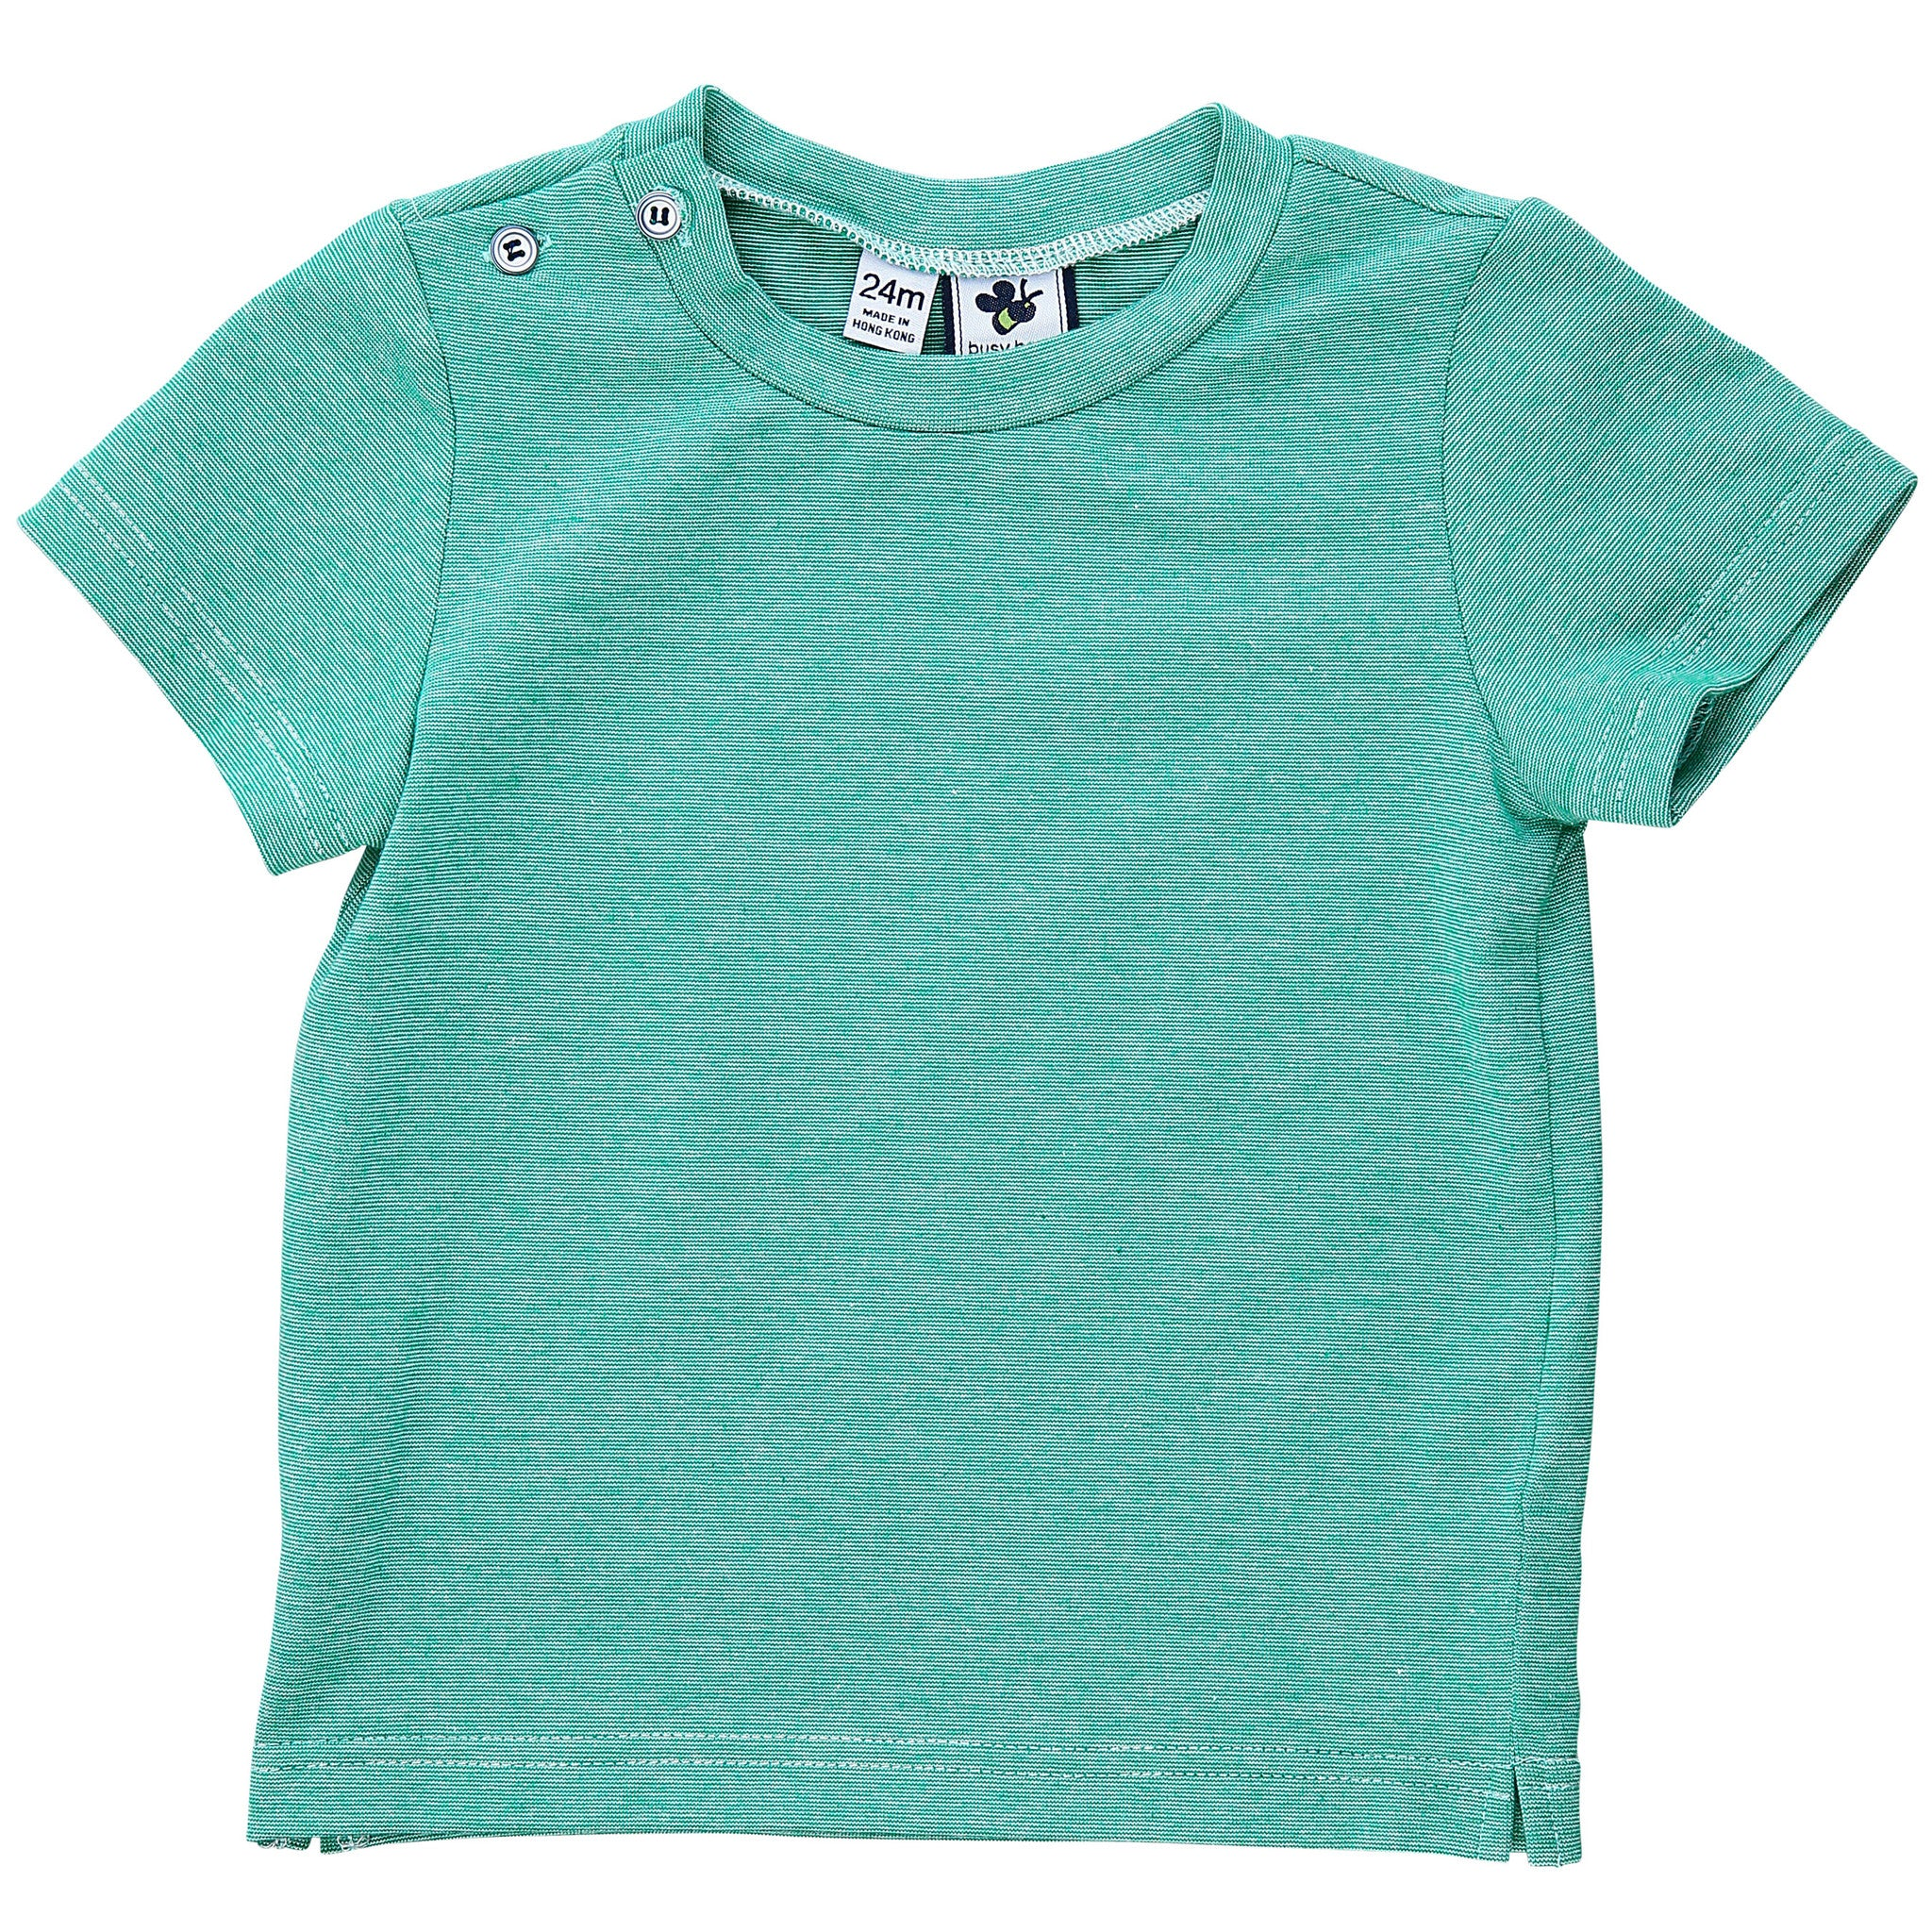 henry button shoulder tee green chambray knit